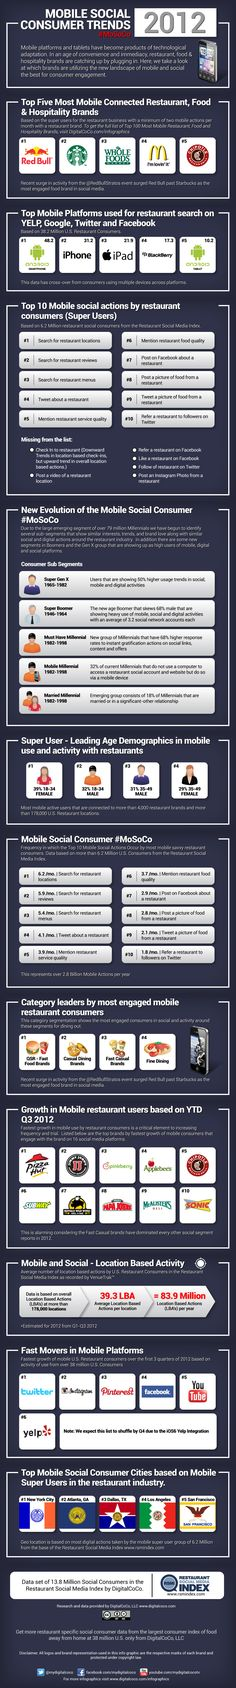 Mobile Social Consumer Trends 2012 #Infographic